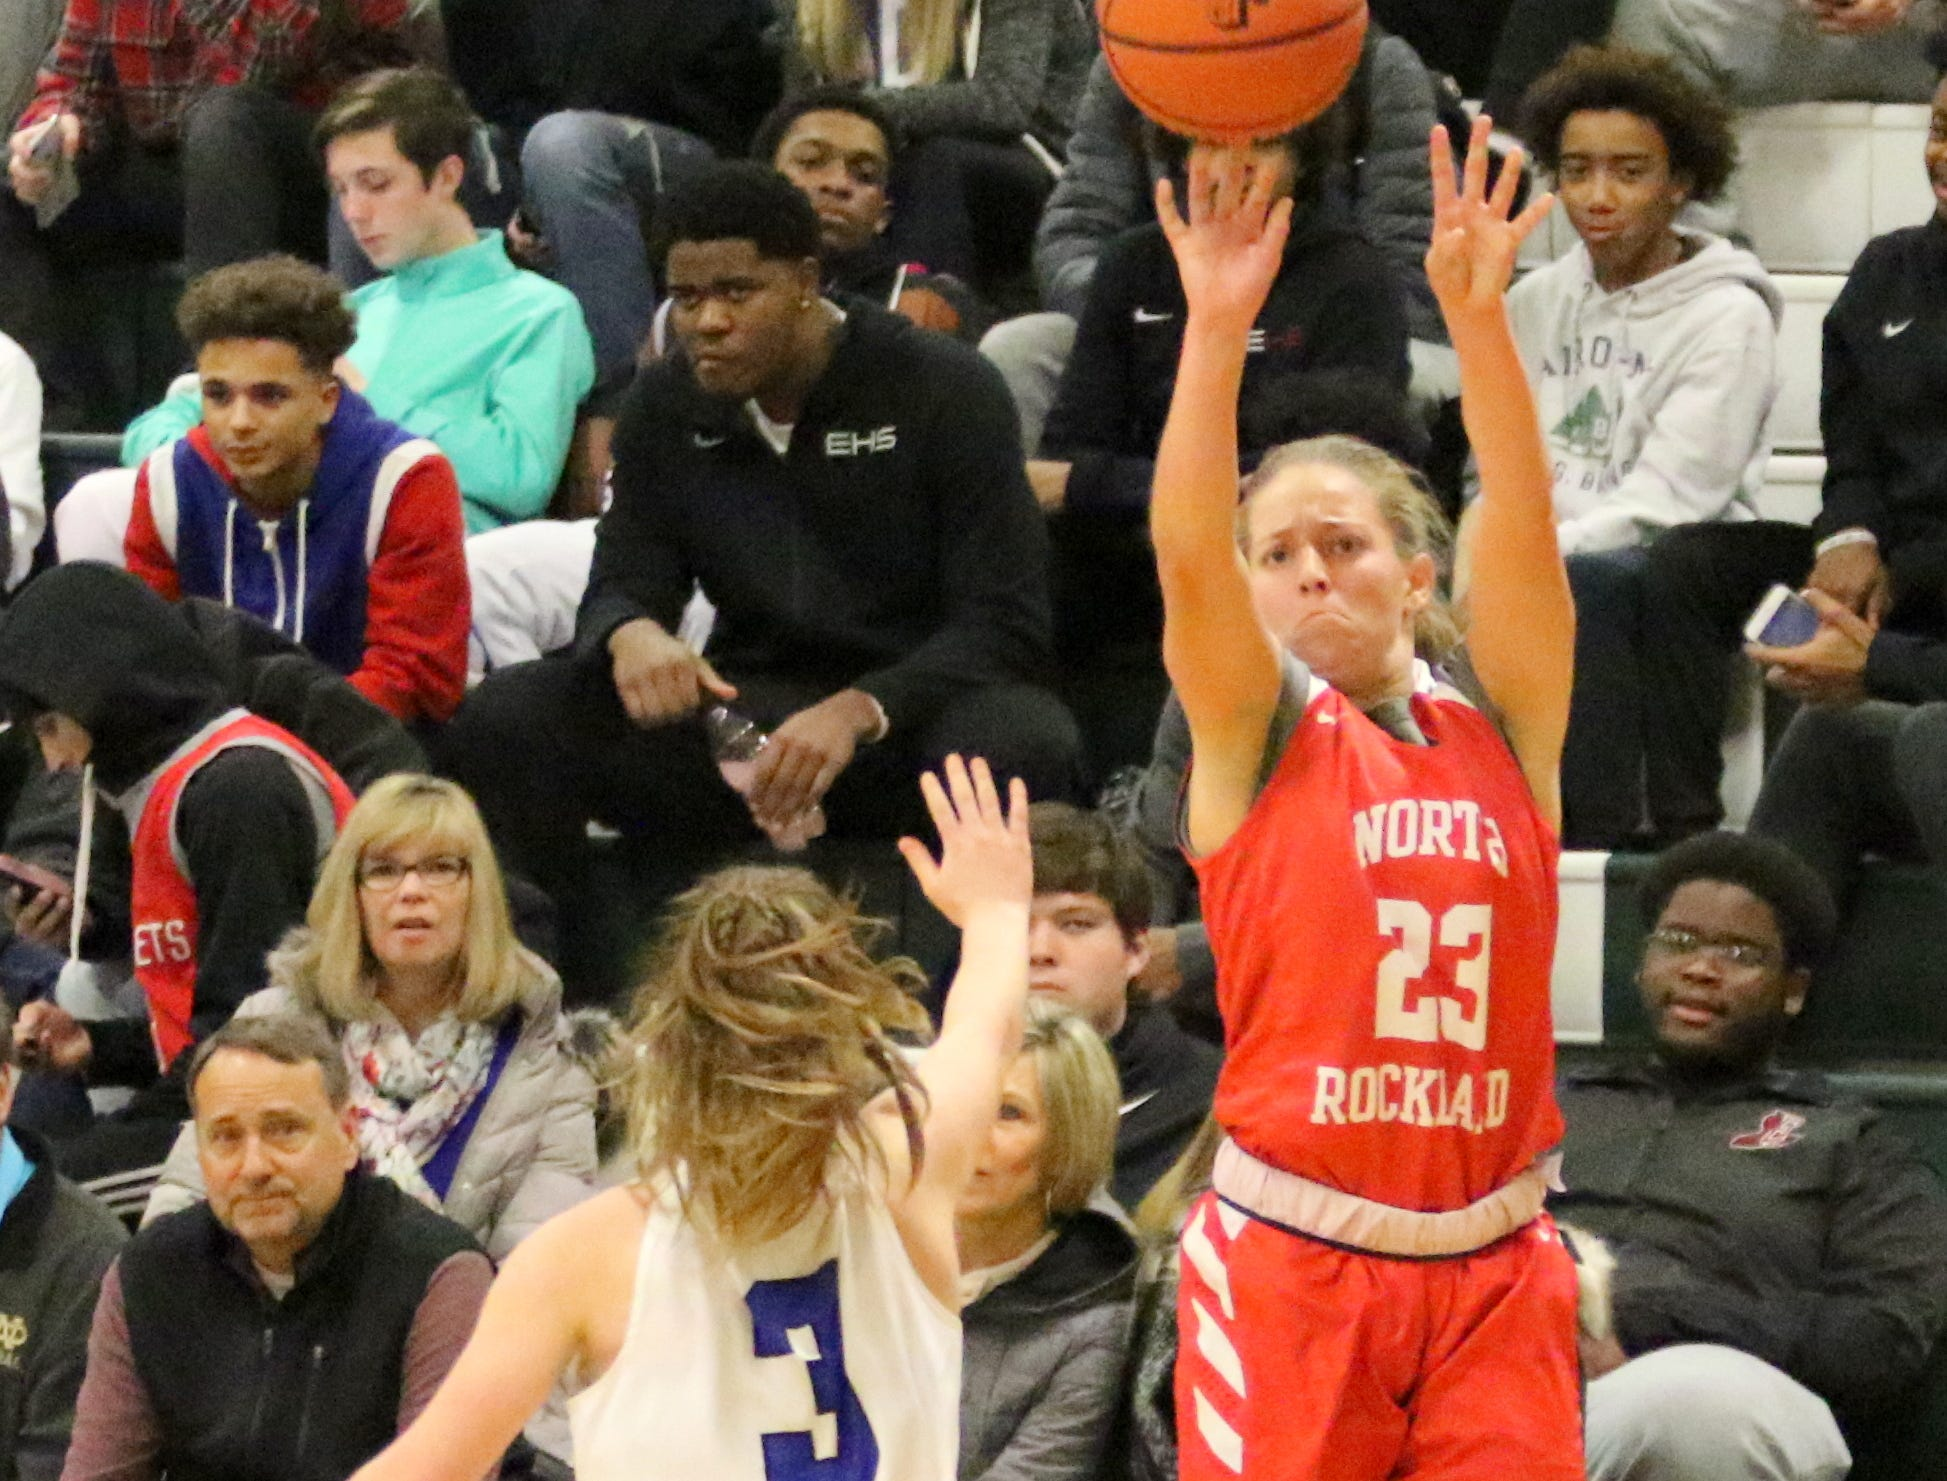 North Rockland was a 43-41 winner over Horseheads in a girls quarterfinal at the Josh Palmer Fund Elmira Holiday Inn Classic on Dec. 27, 2018 at Elmira High School.